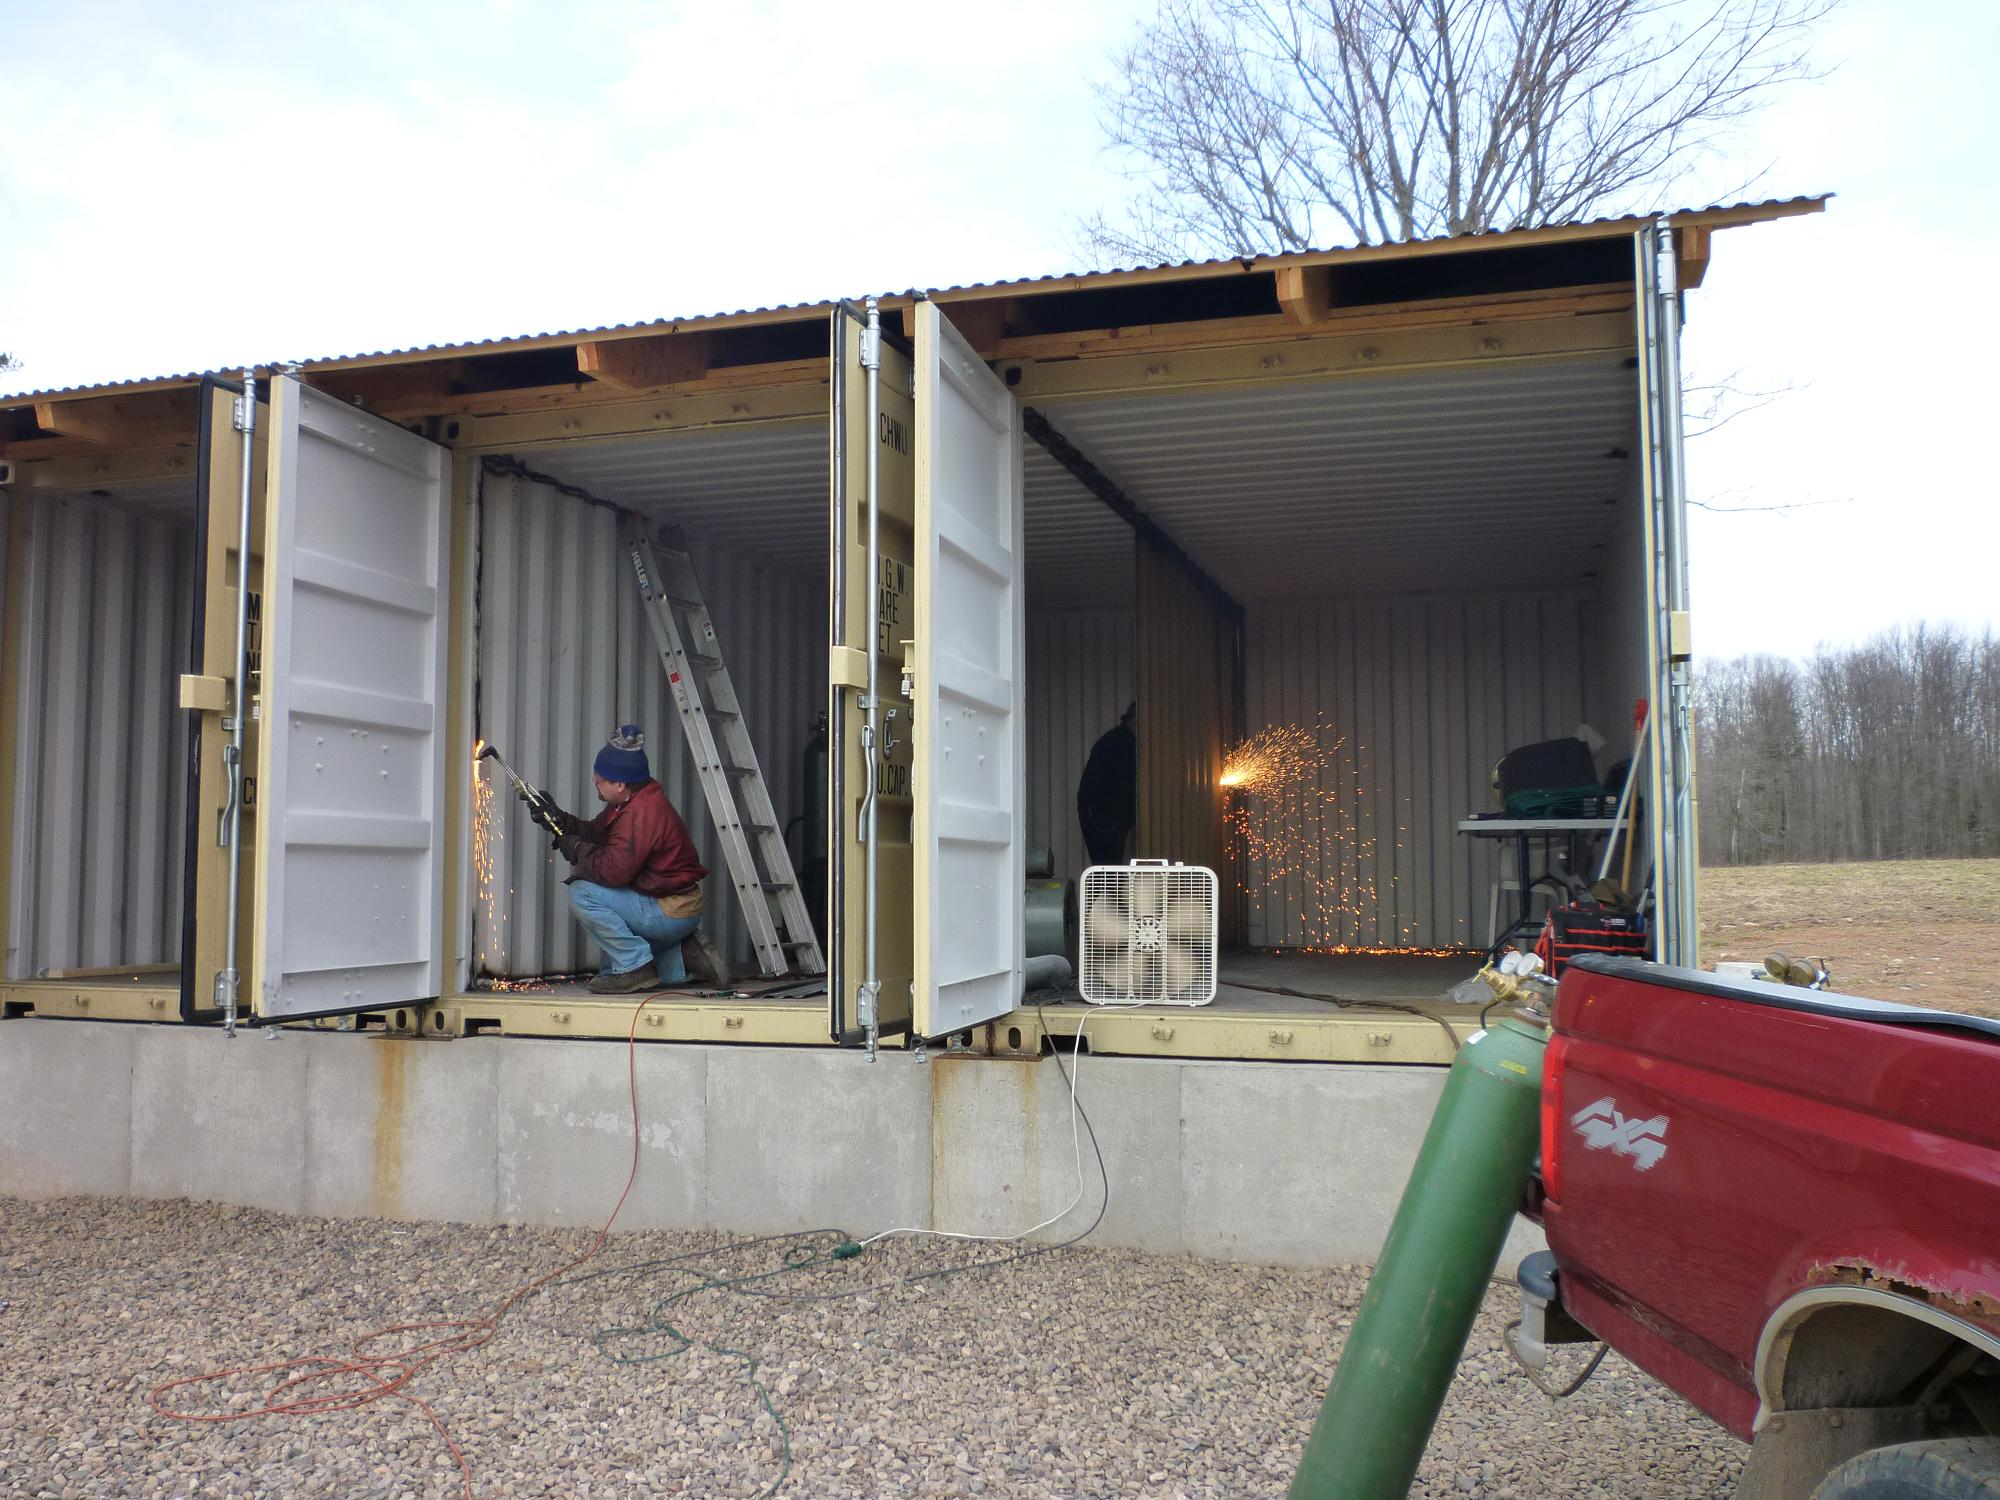 Best Kitchen Gallery: How To Build Tin Can Cabin of Home Out Of Shipping Containers  on rachelxblog.com